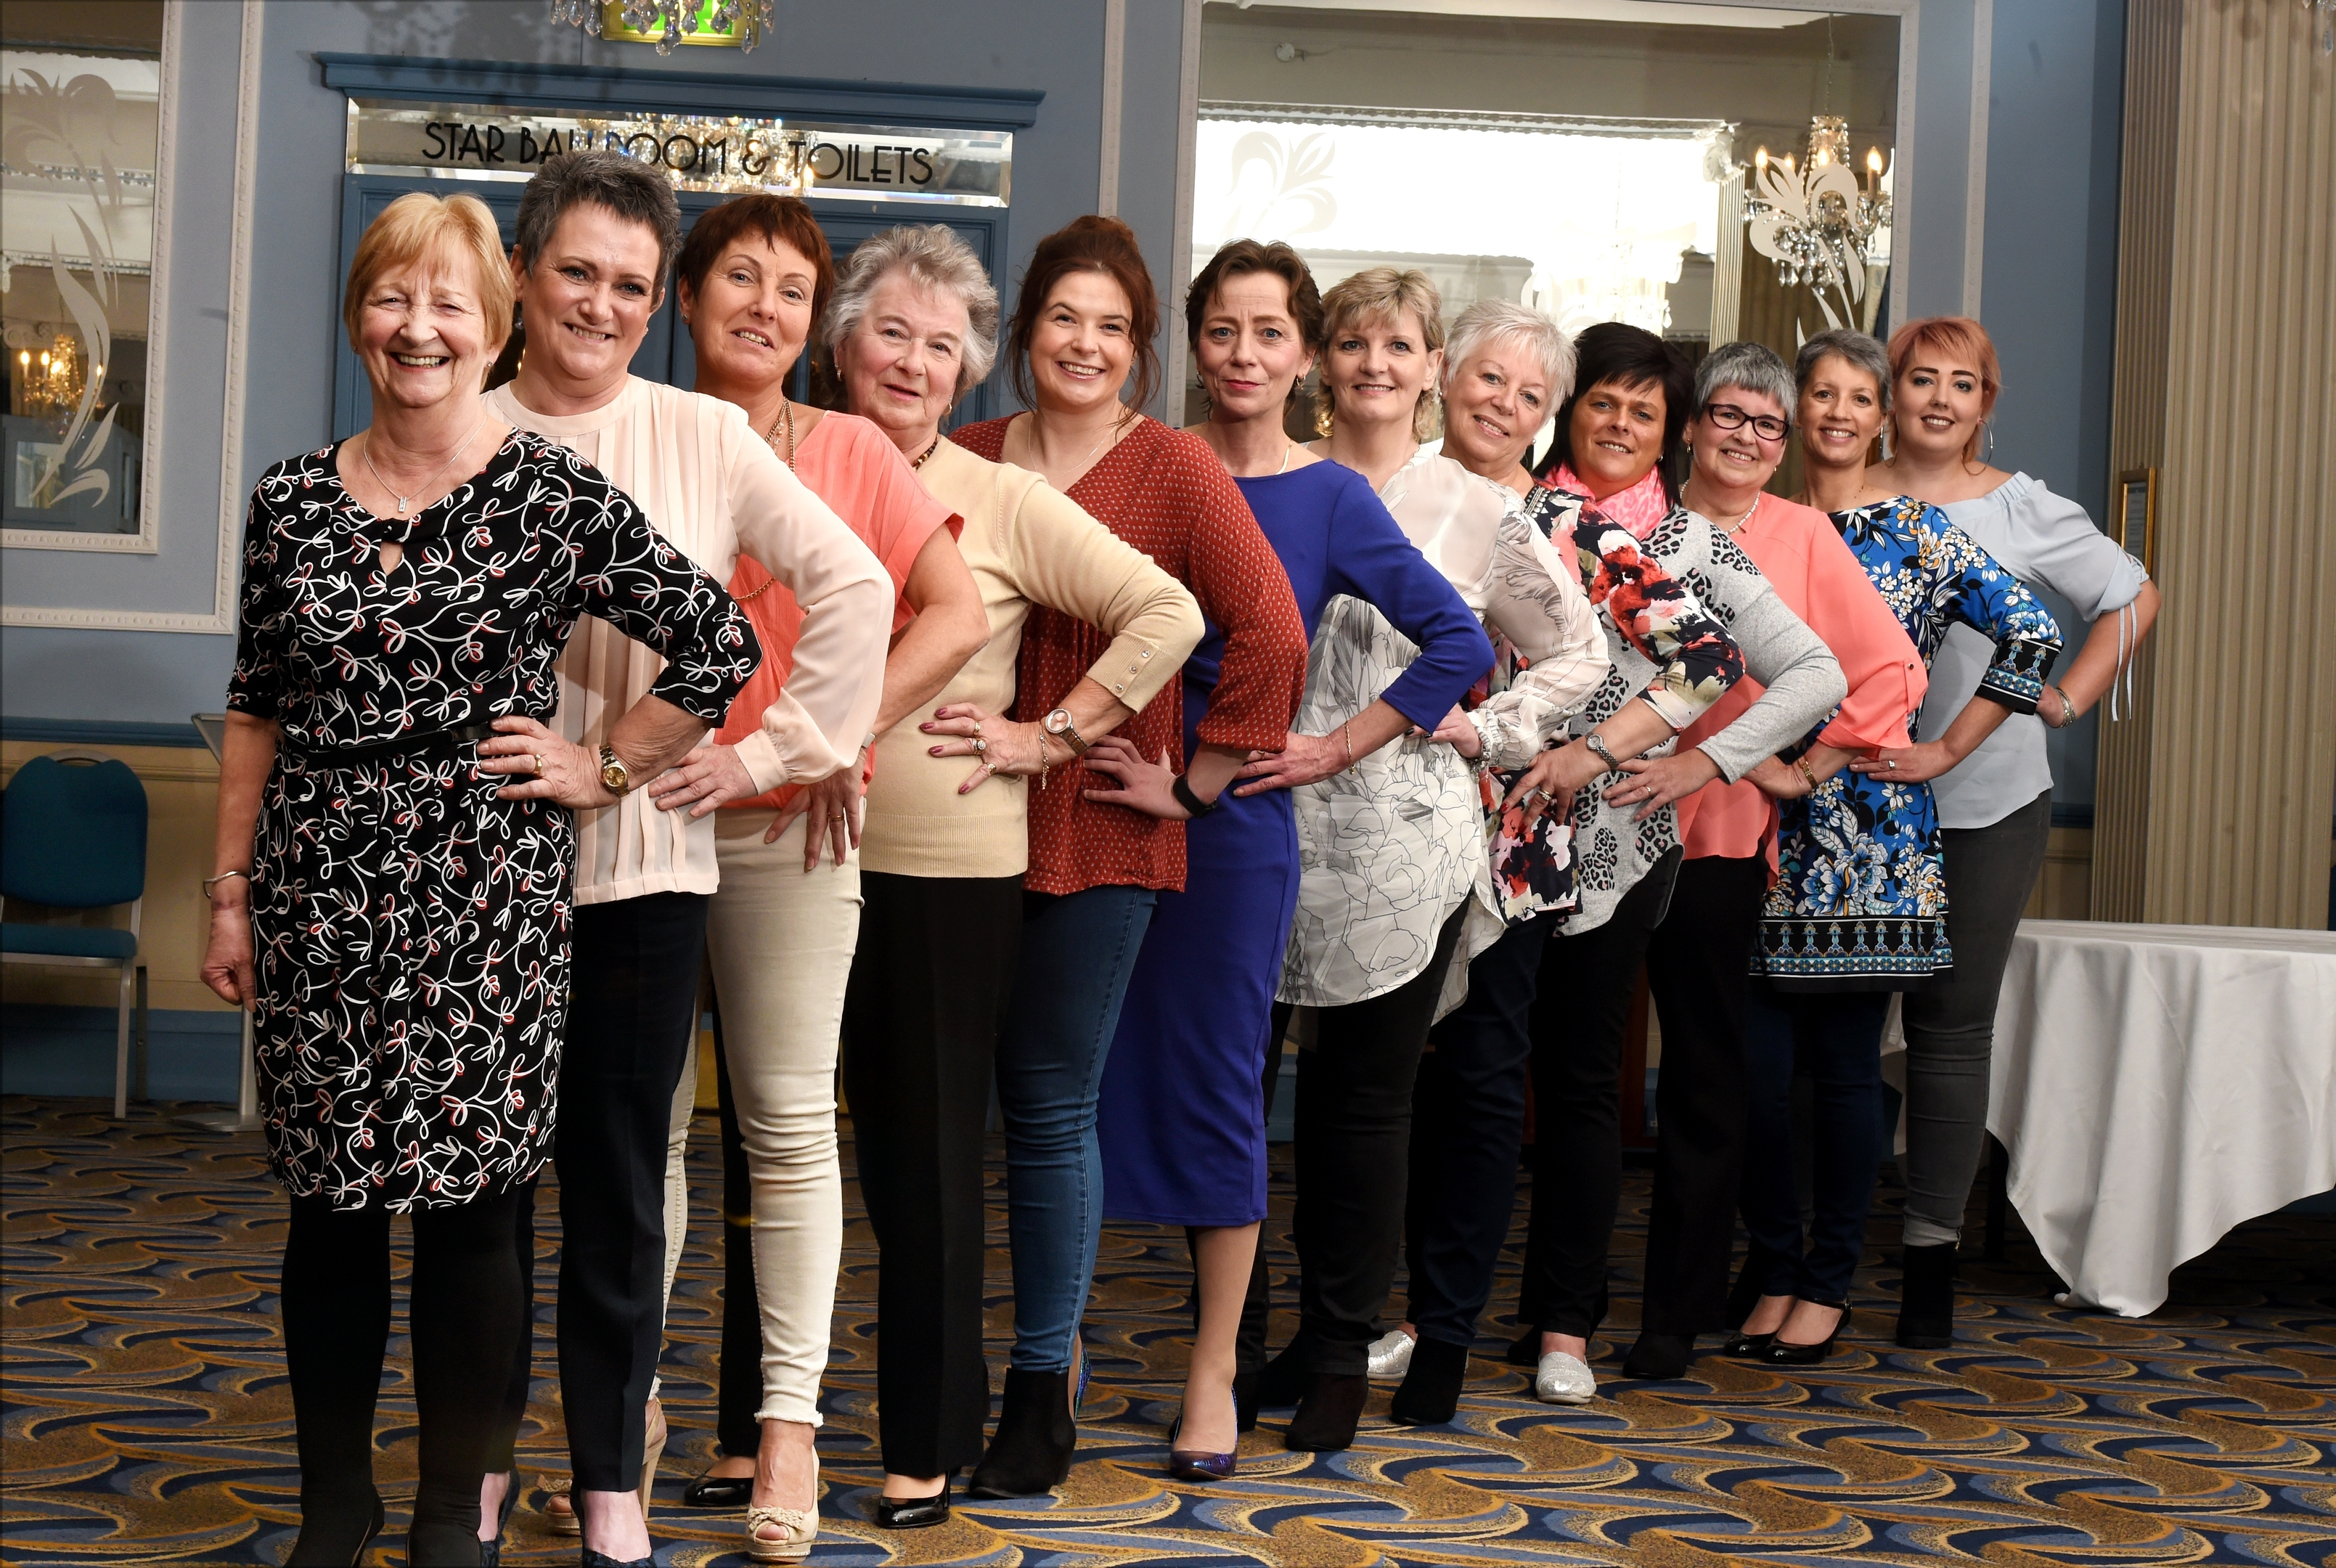 (From left) Anne Rae, Janie Crampshee, Milly Hutcheon, Vilma Main, Kim Wilkie, Julie Ritchie, Heather Moir, Alix Coull, Wendy Palmer, Christina Crawford, Yvonne Mitchell and Nadia Cruickshank.